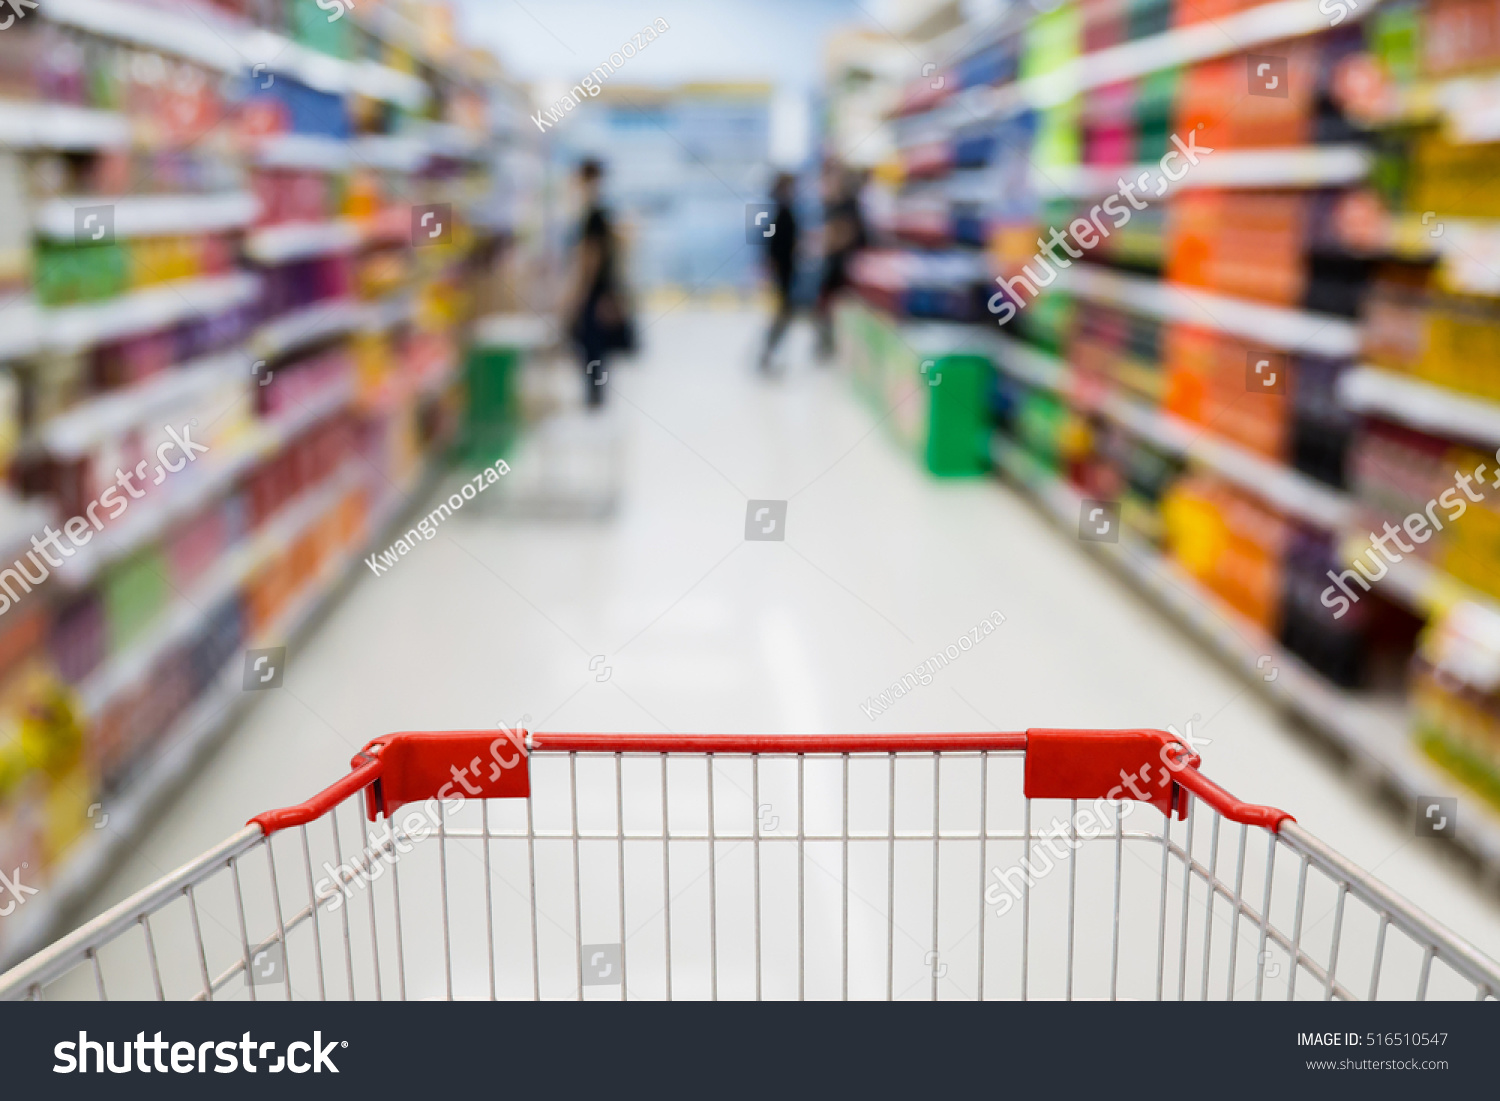 Beverages In The Supermarket Aisle